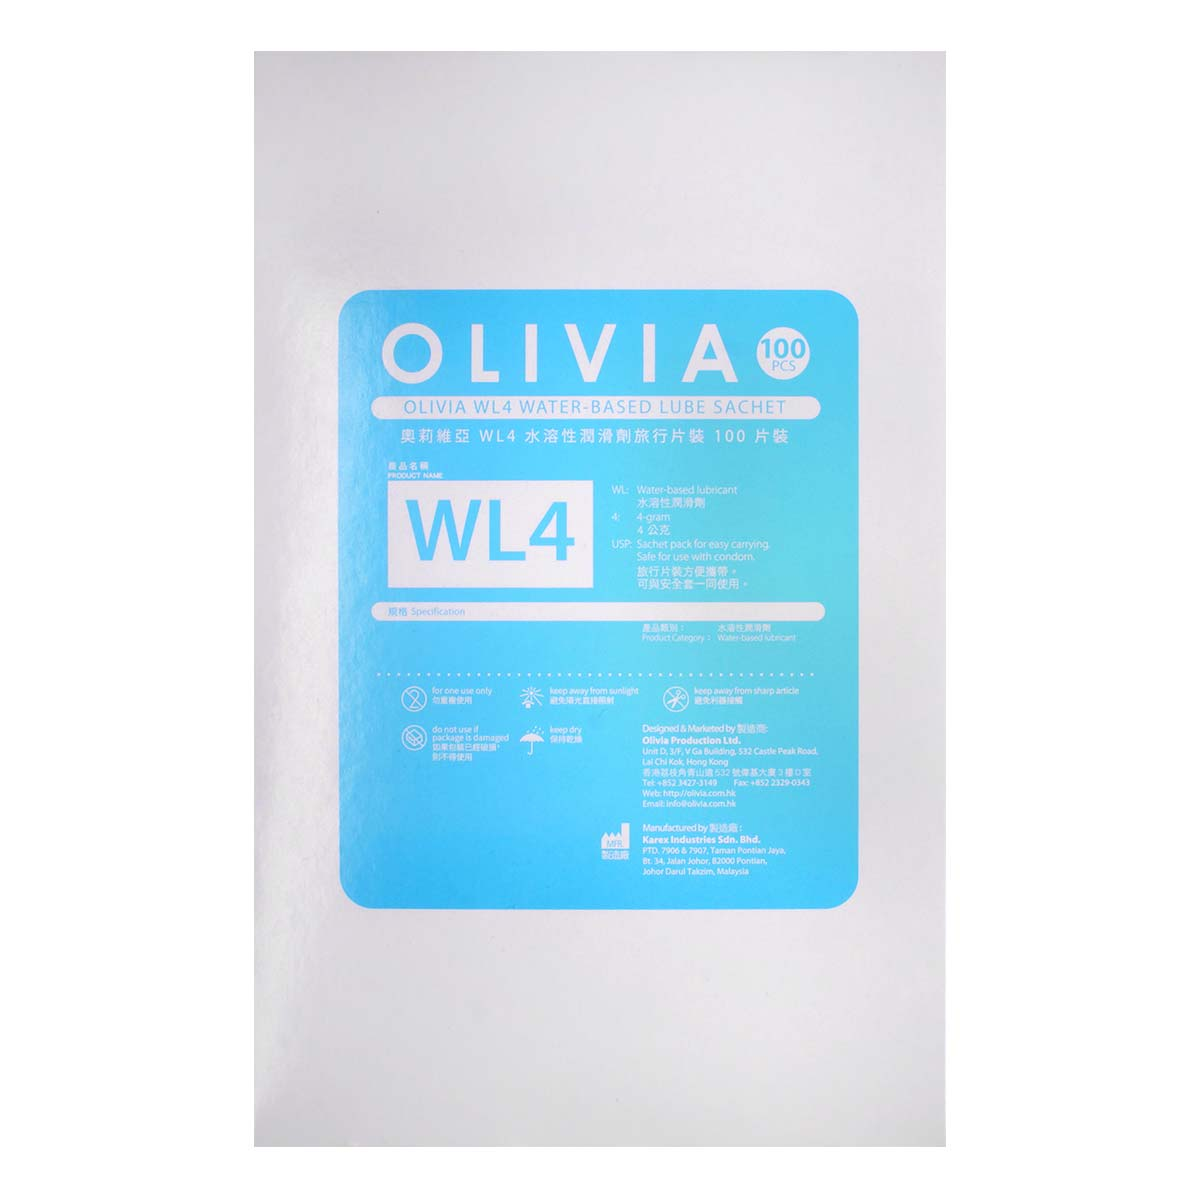 Olivia WL4 sachet 100 pieces Water-based Lubricant